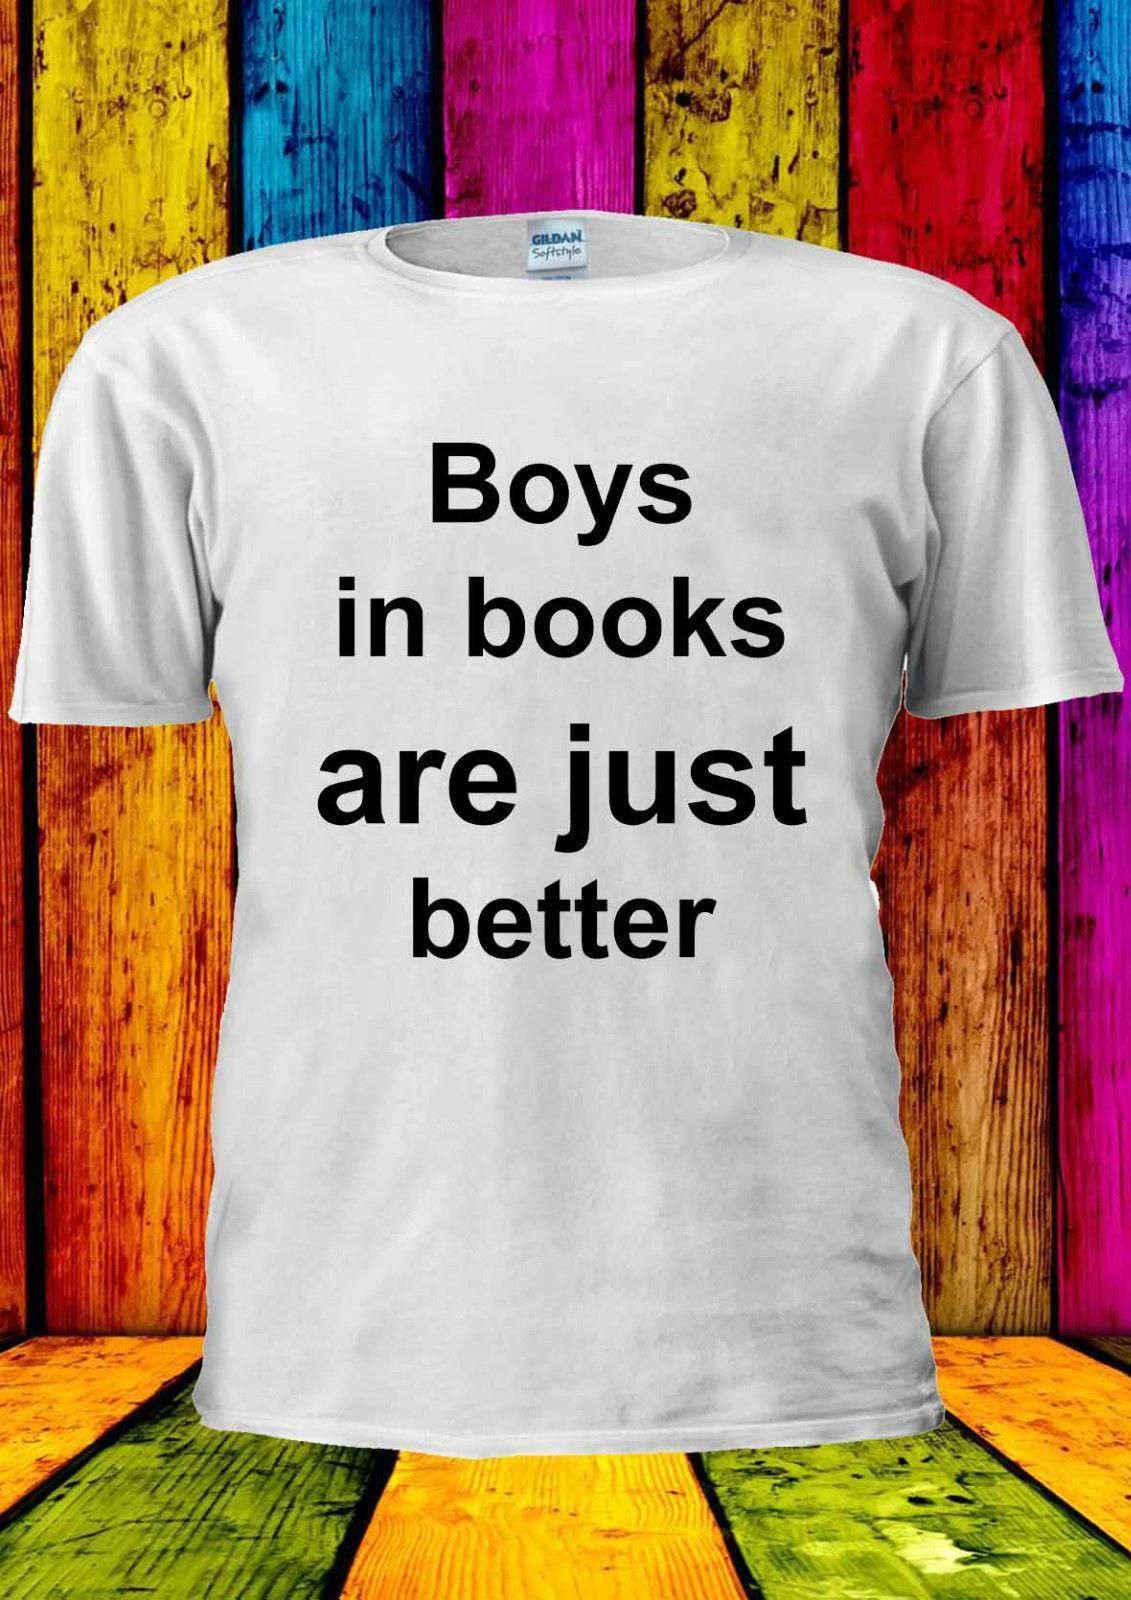 6aa49c6ed4b23 Boys In Books Are Just Better Tumblr T Shirt Vest Tank Top Men Women Unisex  1882 Canada 2019 From Yuxin002